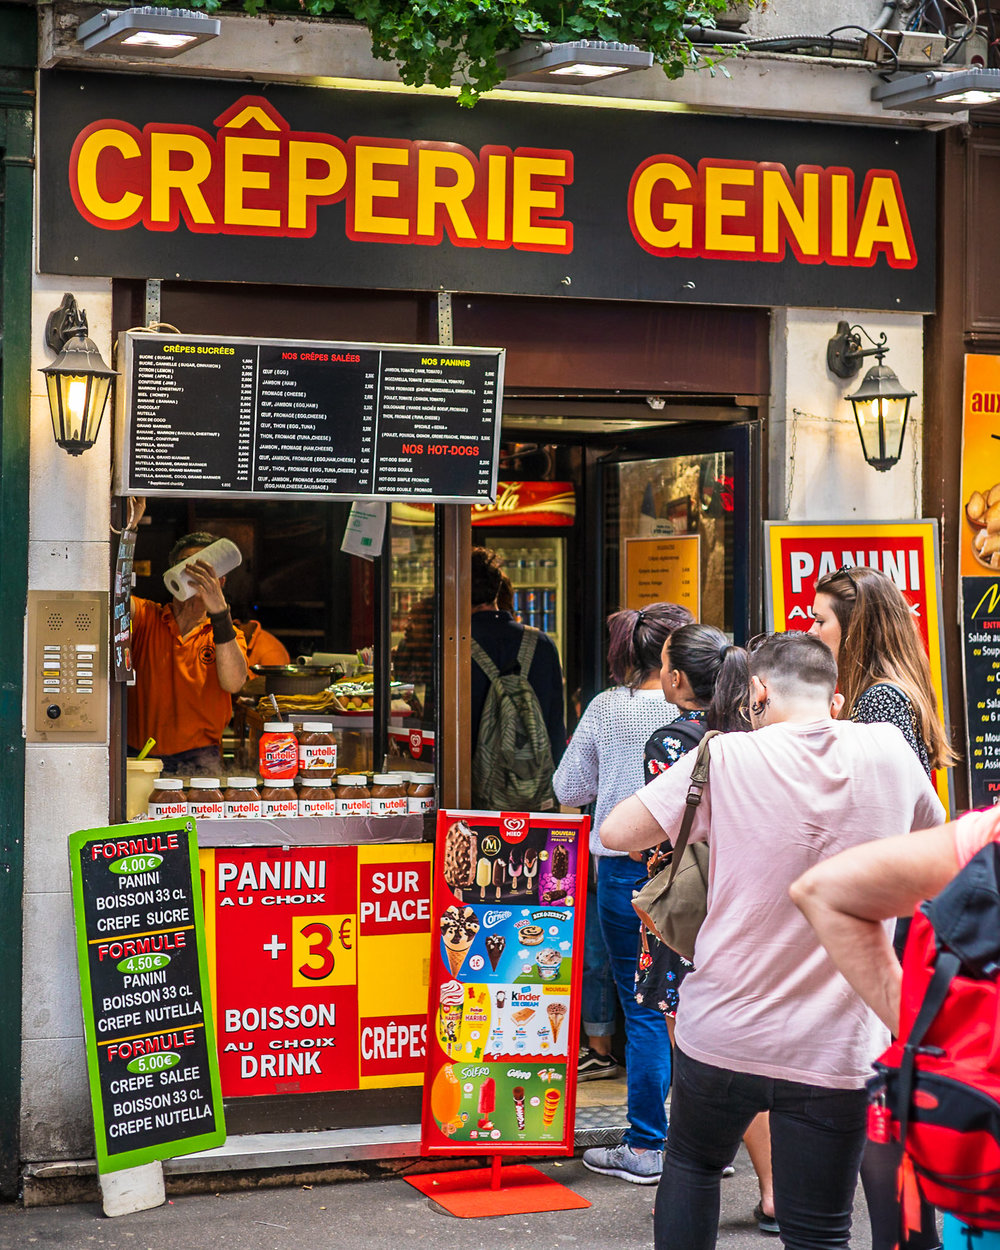 Creperie Genia in Paris